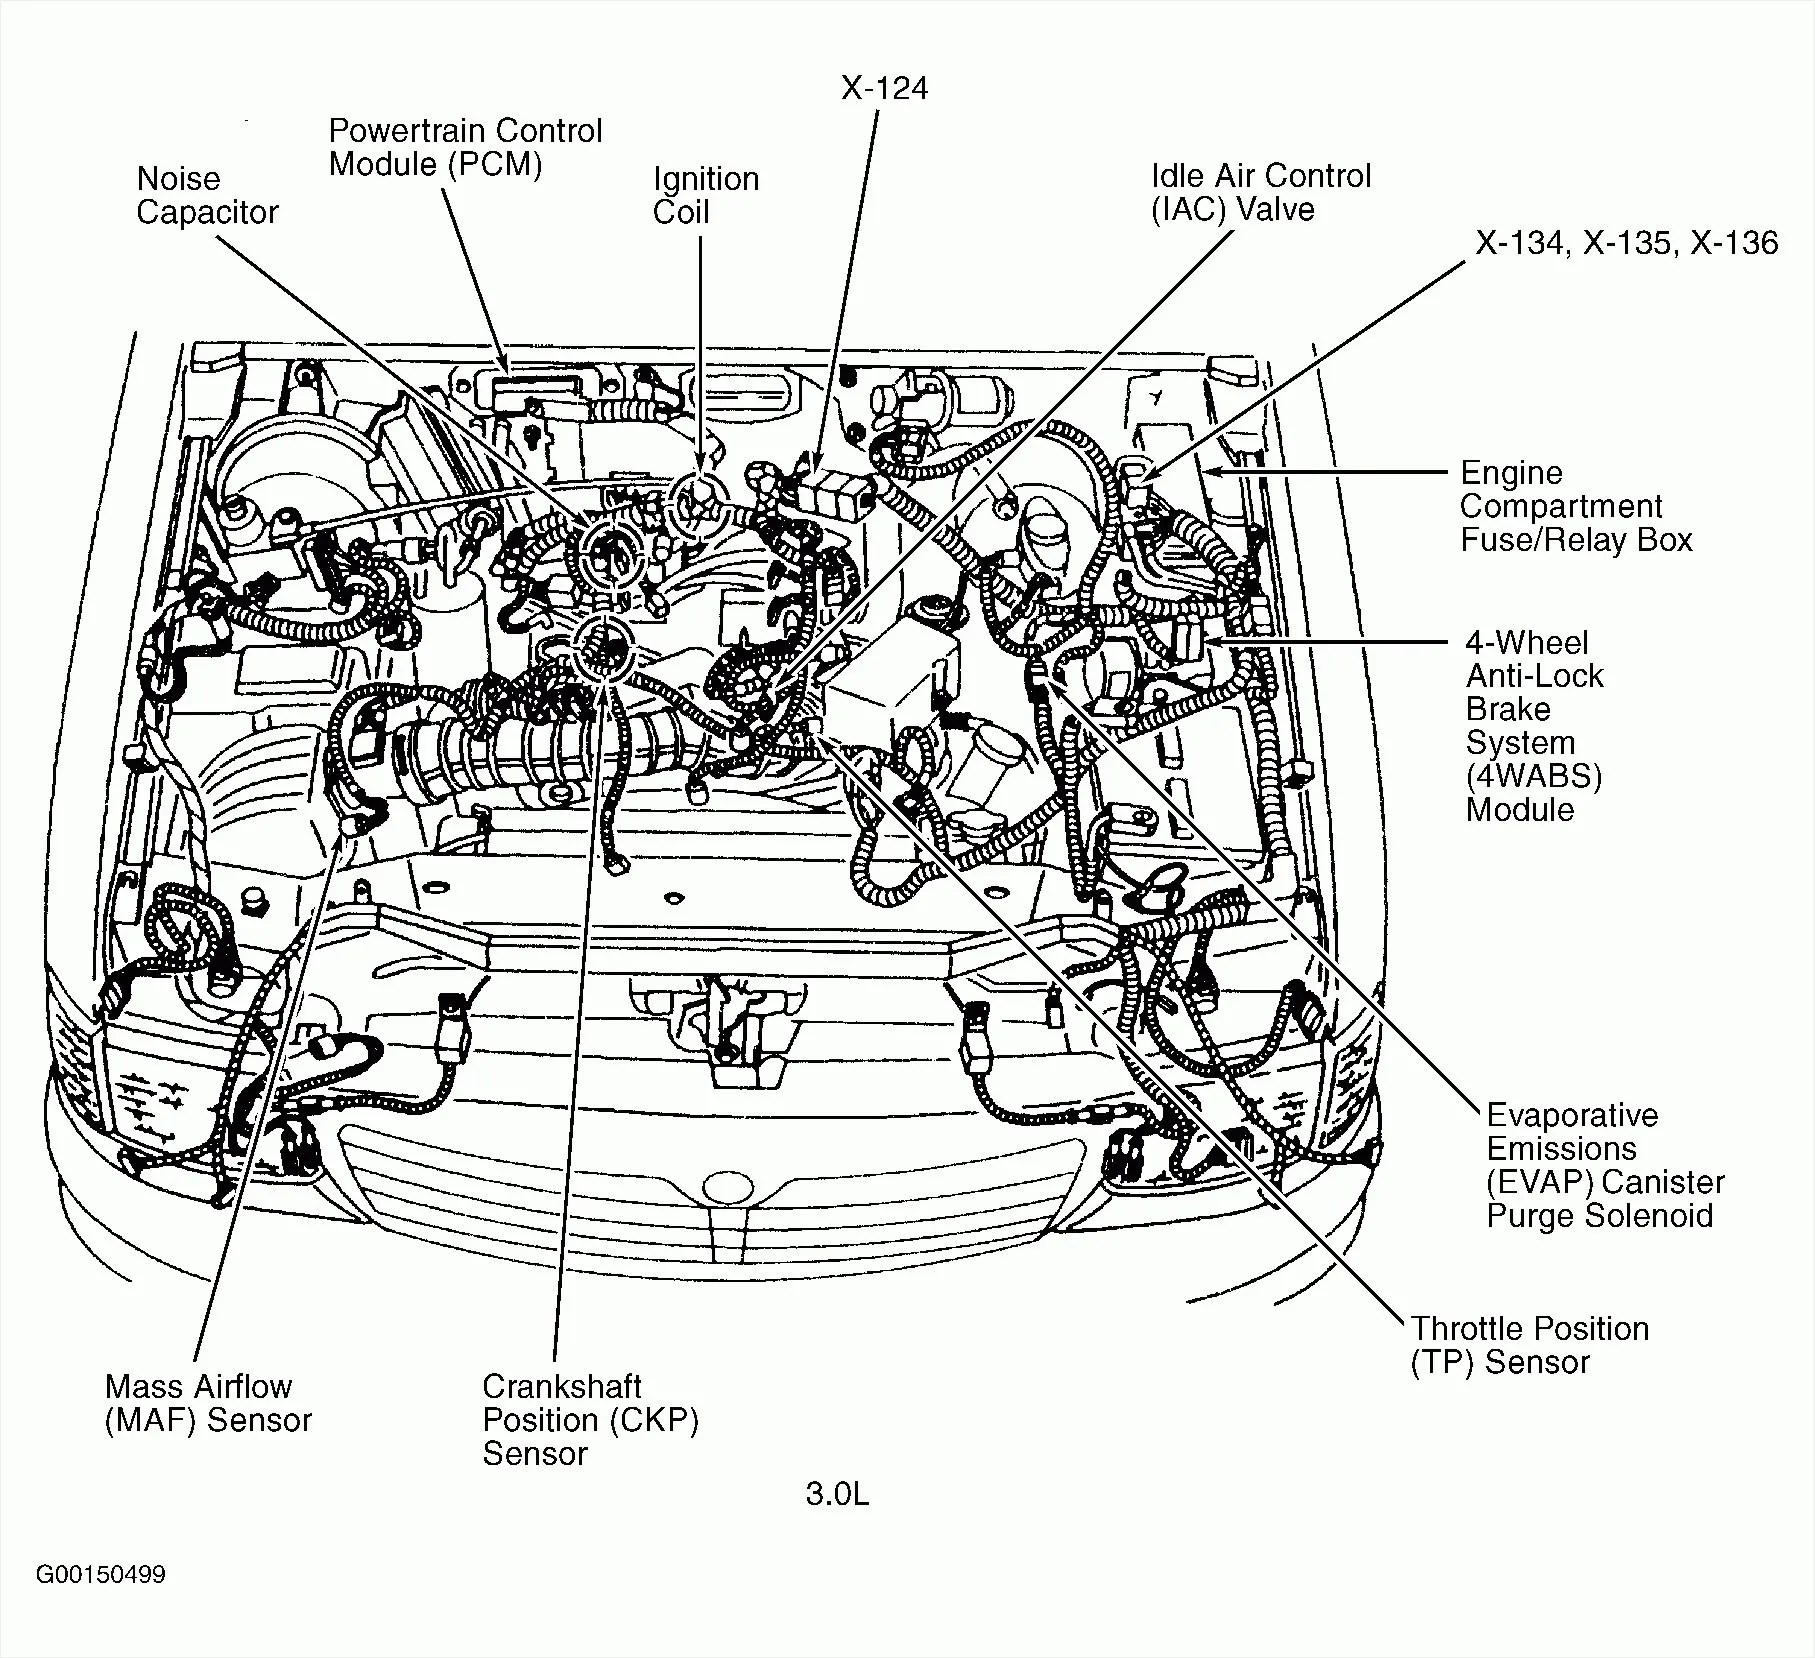 hight resolution of 1996 chevy lumina engine wiring diagram